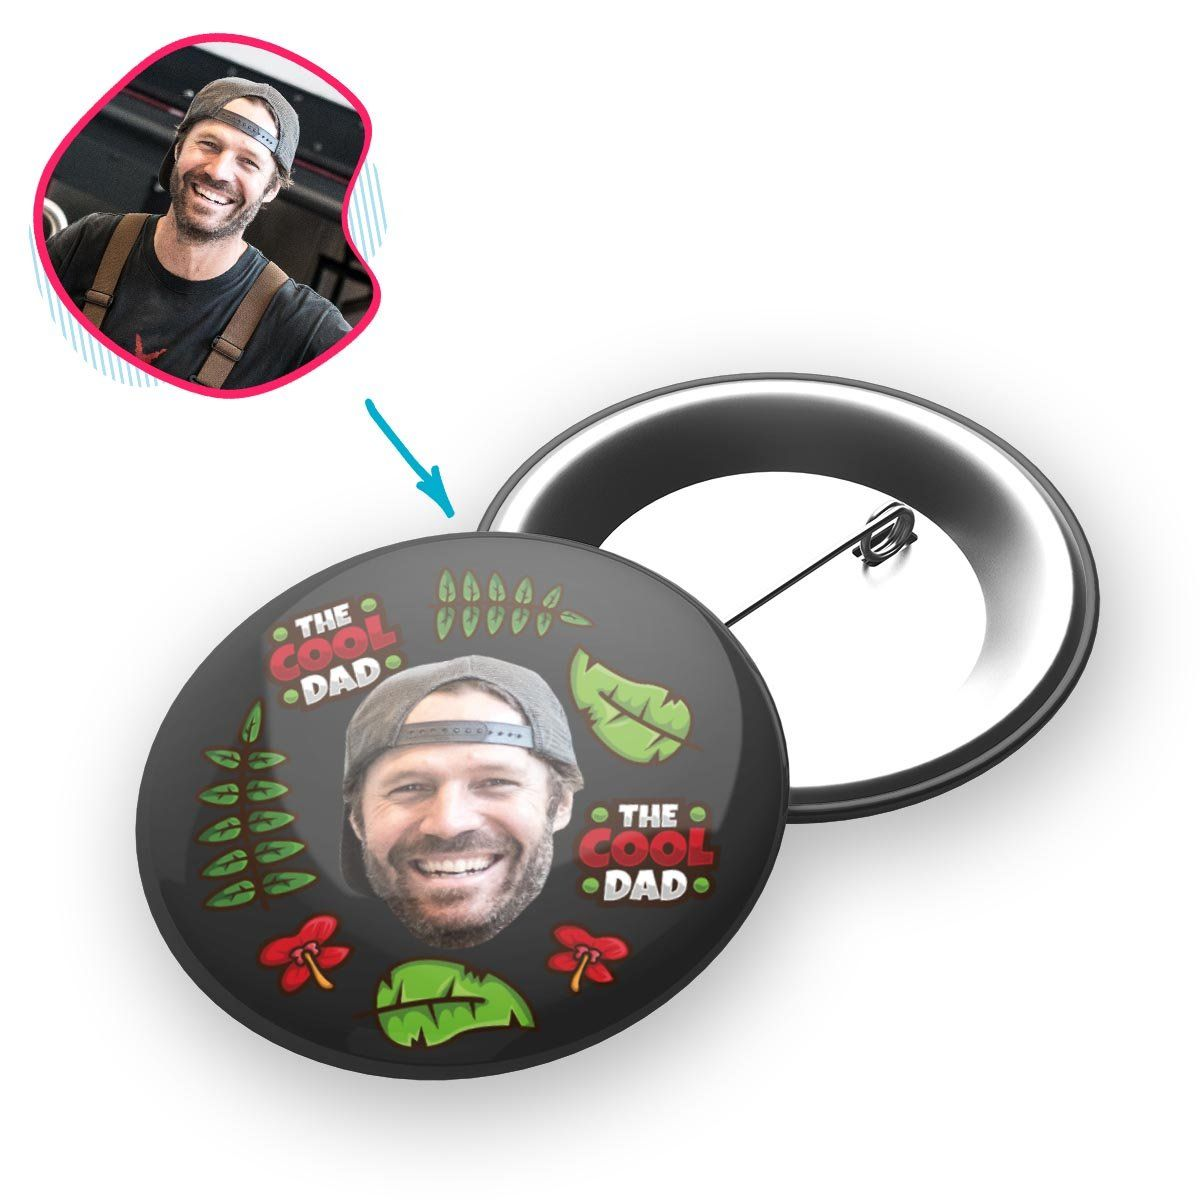 dark The Cool Dad pin personalized with photo of face printed on it